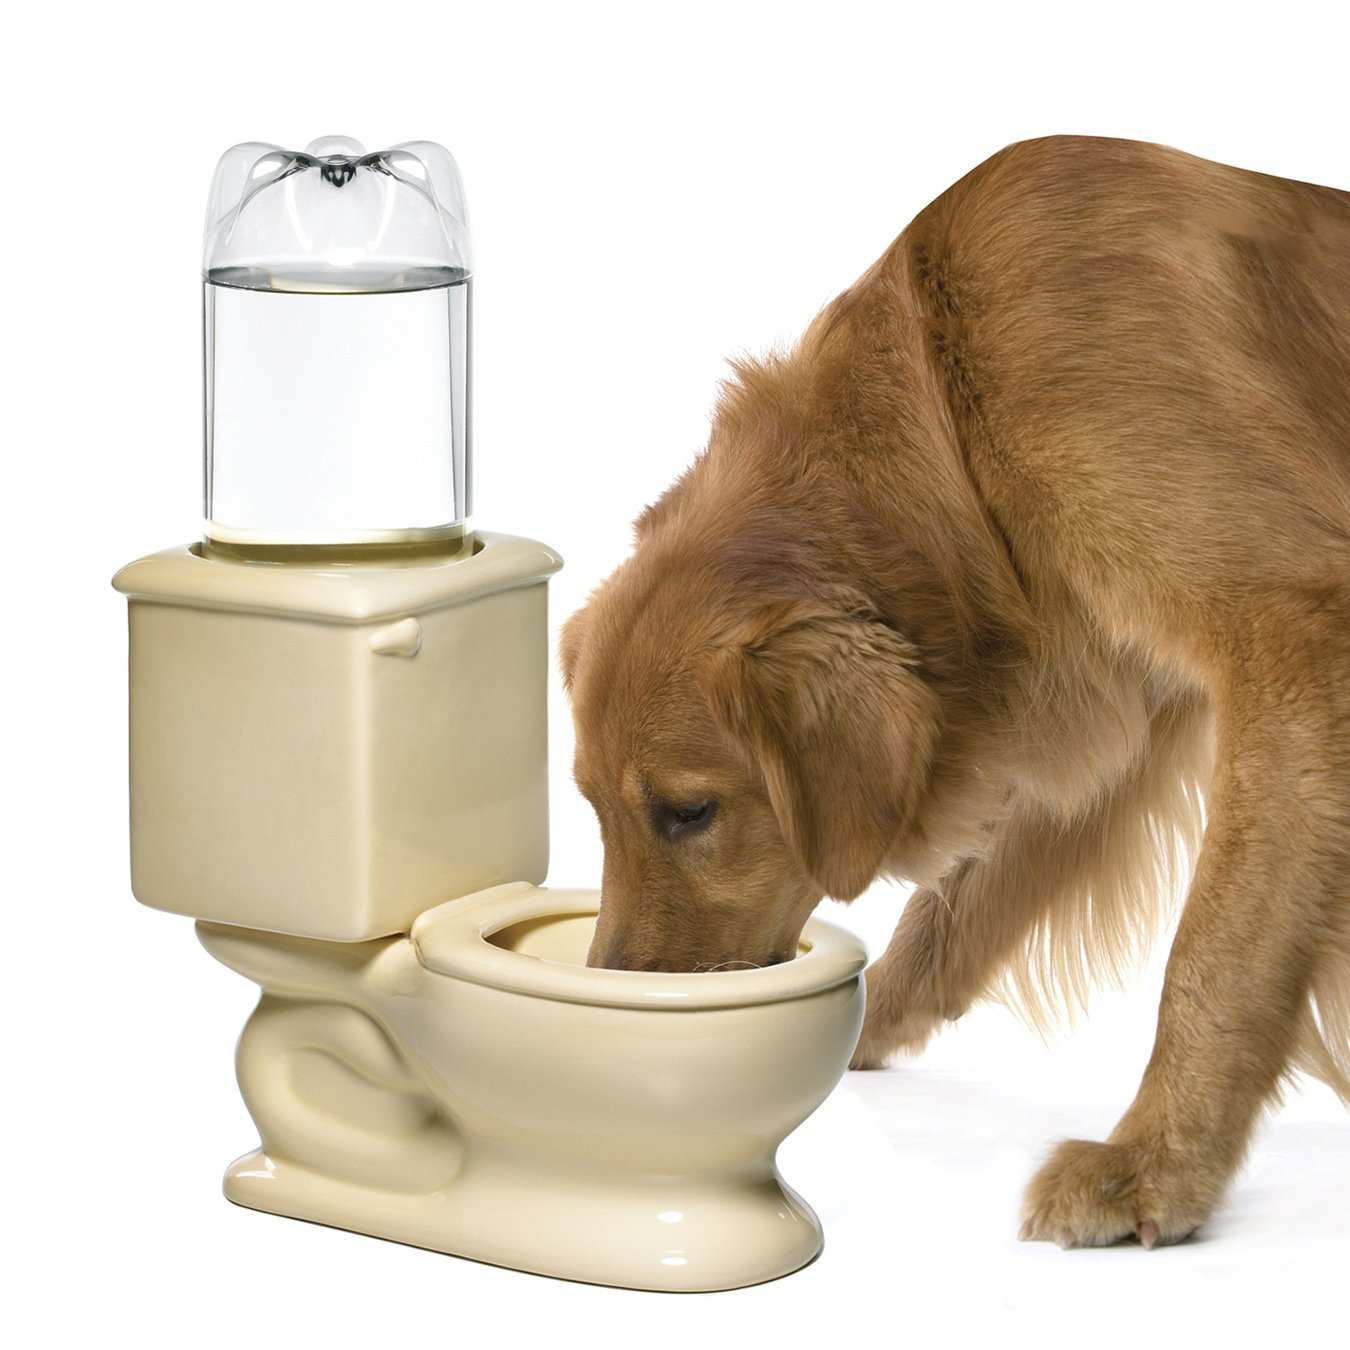 Different Toilet Water Bowl for Pets Home Designing